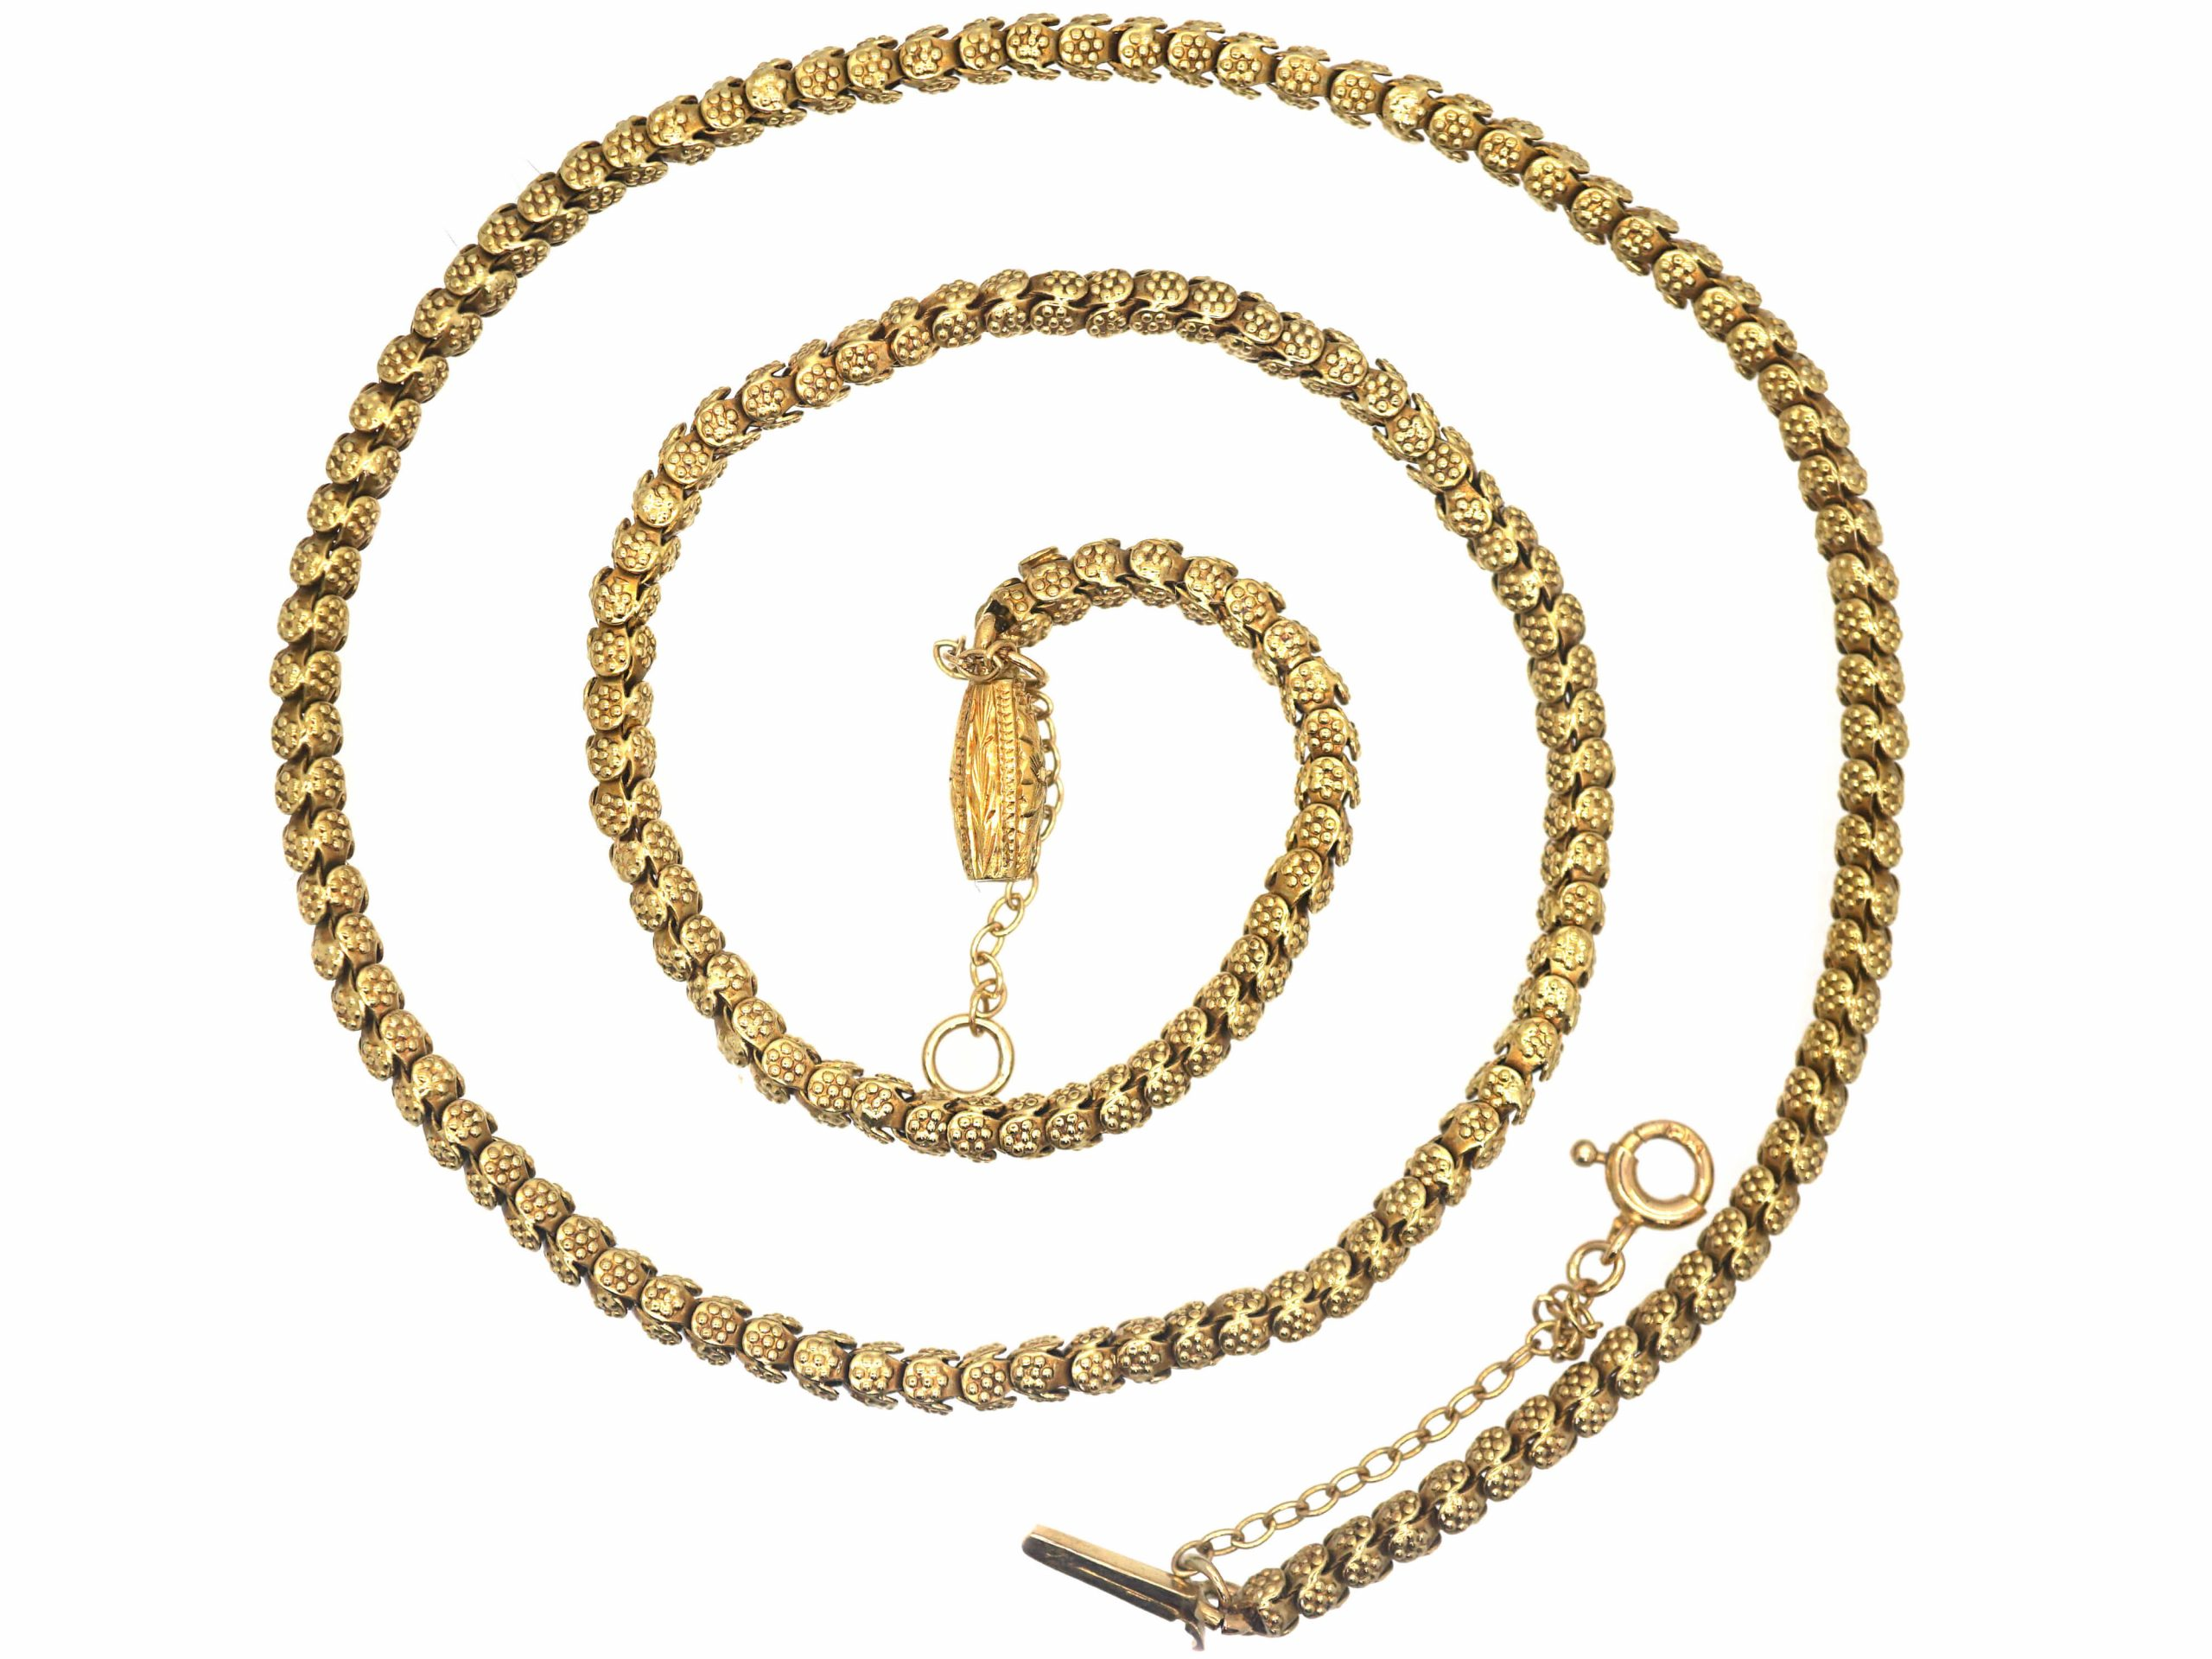 Victorian 15ct Gold Chain with Flower Motif & Decorative Clasp